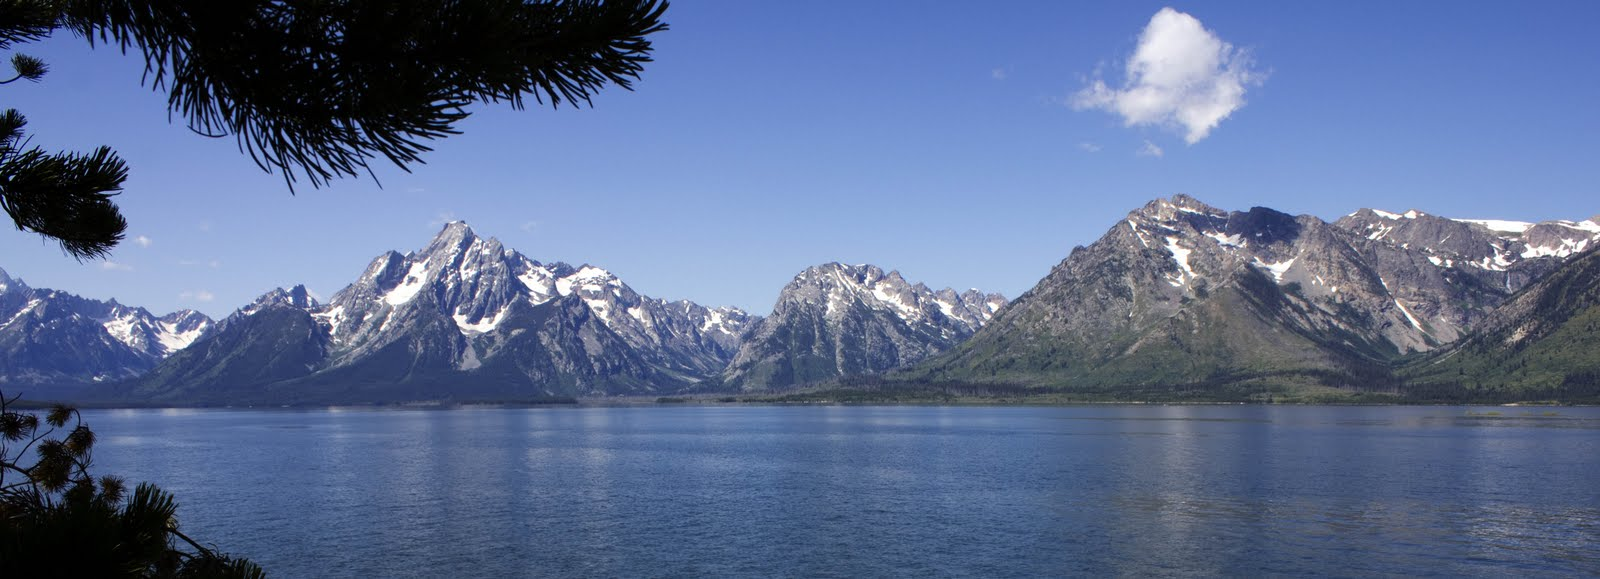 2011 – Le parc national des Grands Tetons (Wyoming)